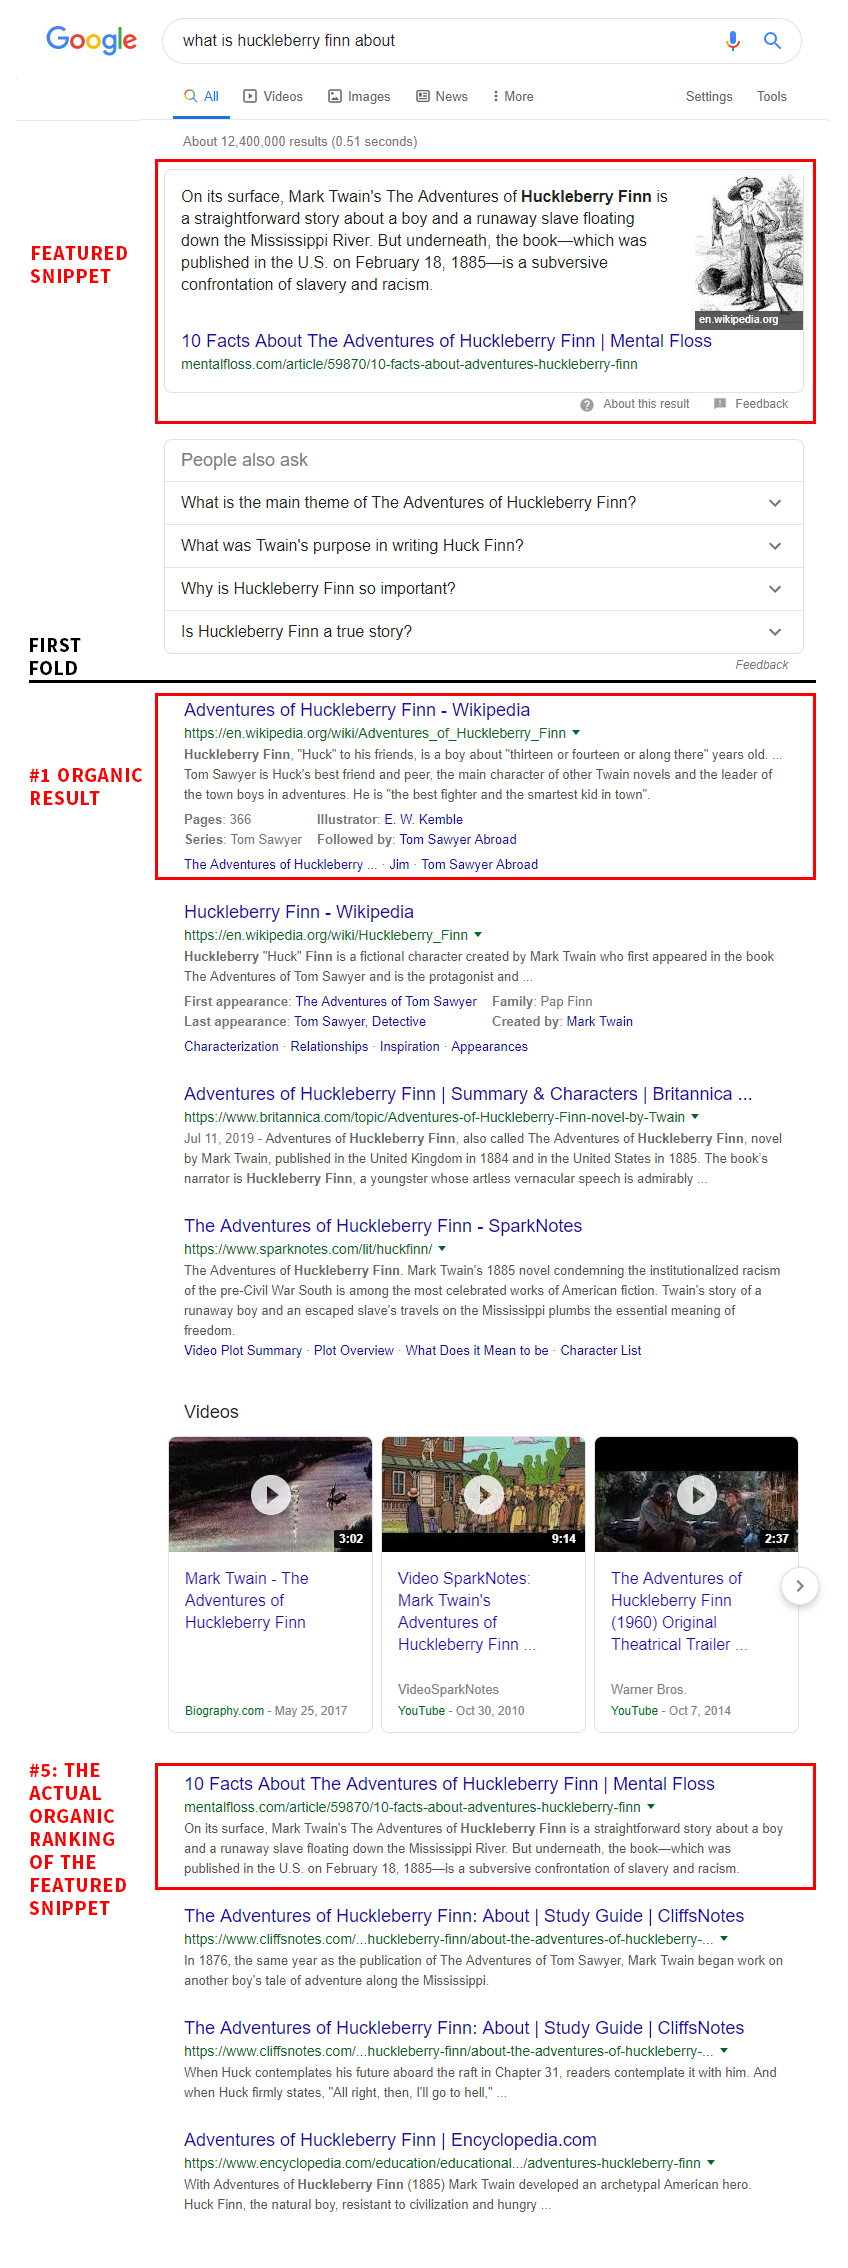 An awesome featured snippet